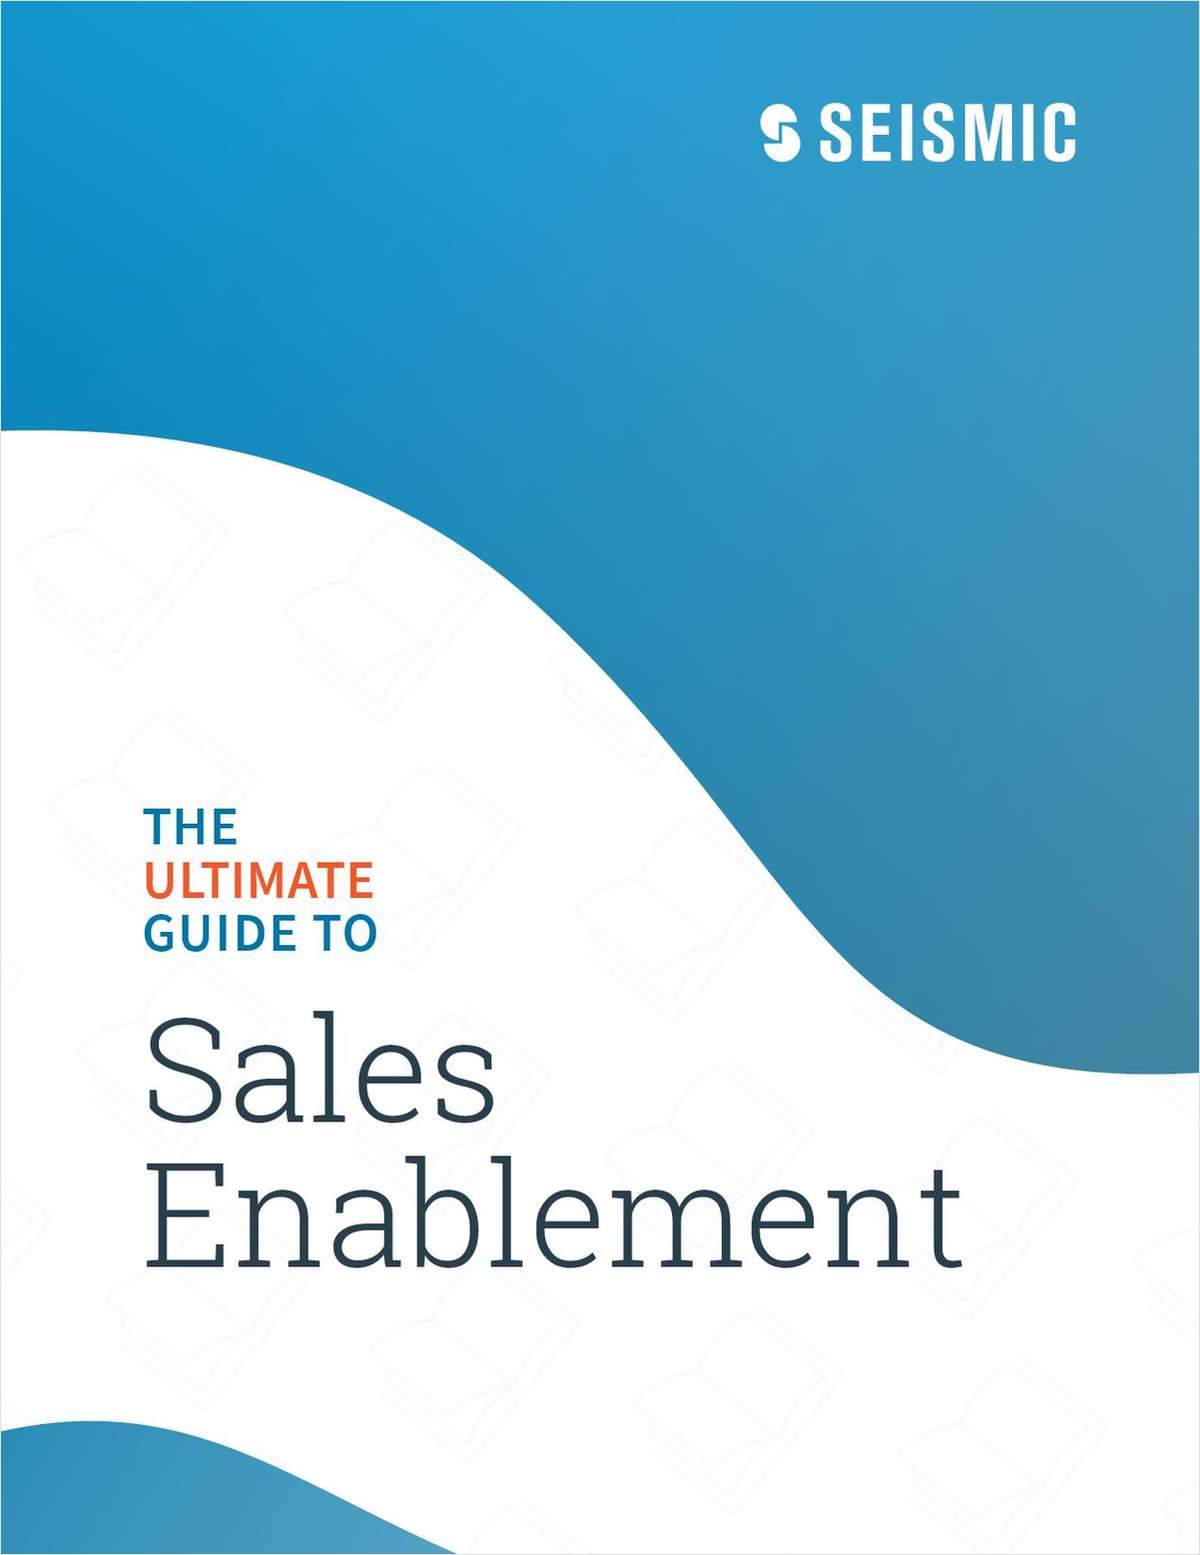 The Ultimate Guide to Sales Enablement